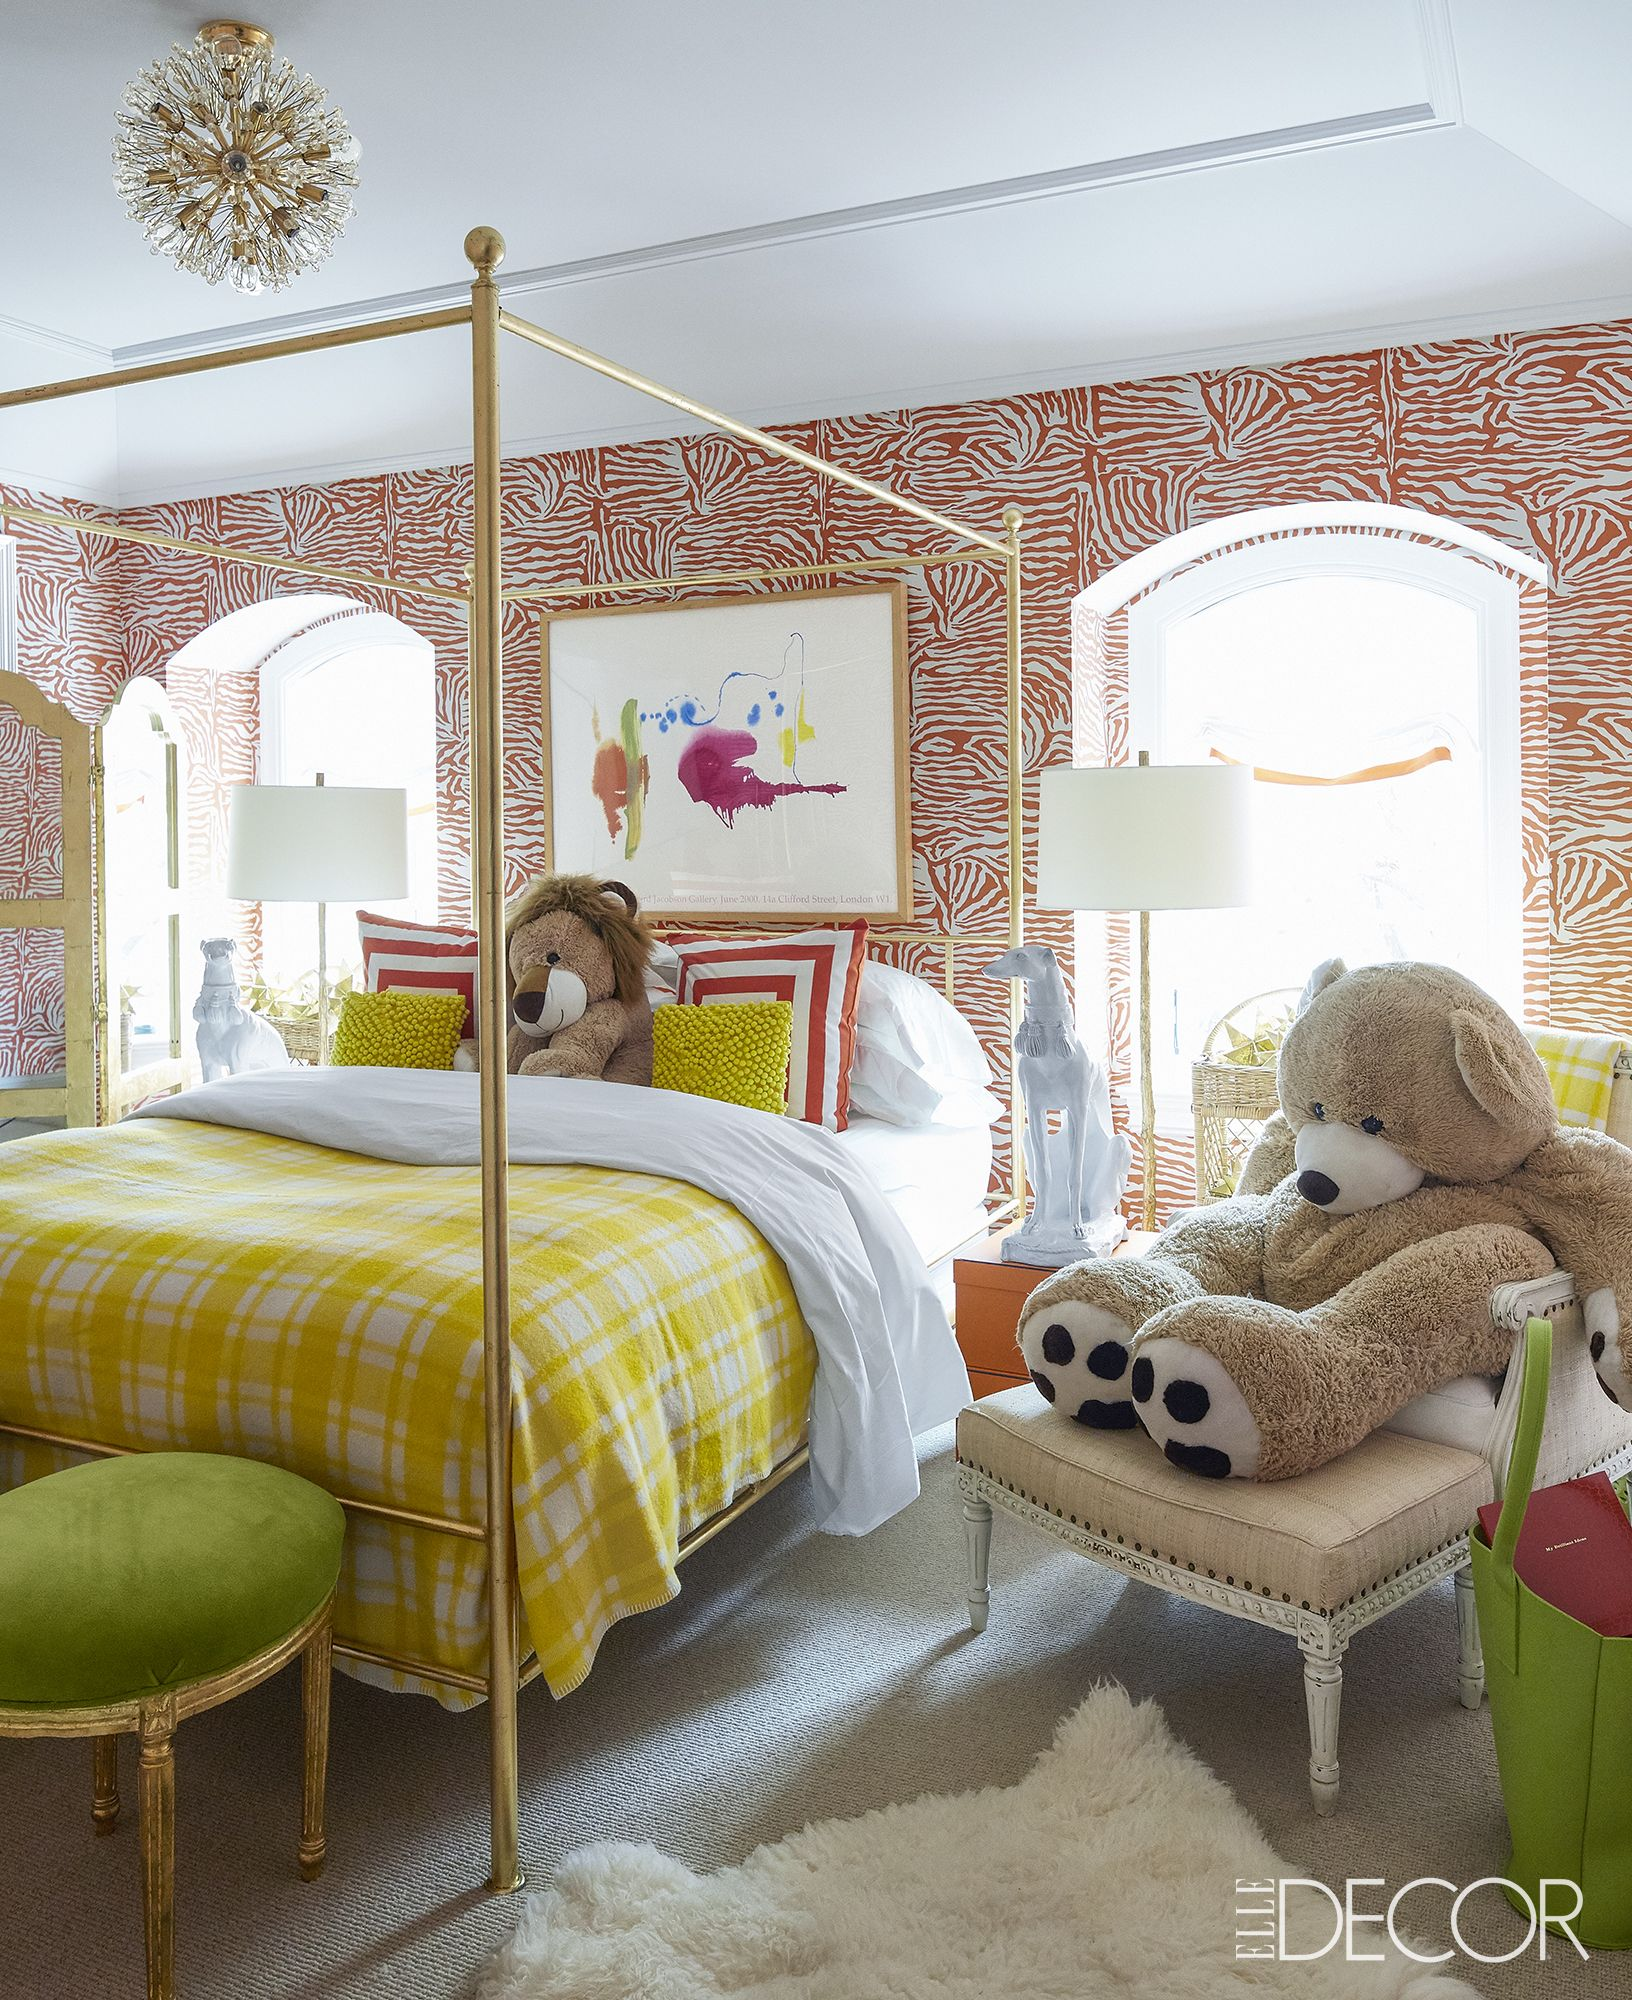 18 cool kids room decorating ideas kids room decor - Kids Room Design Ideas